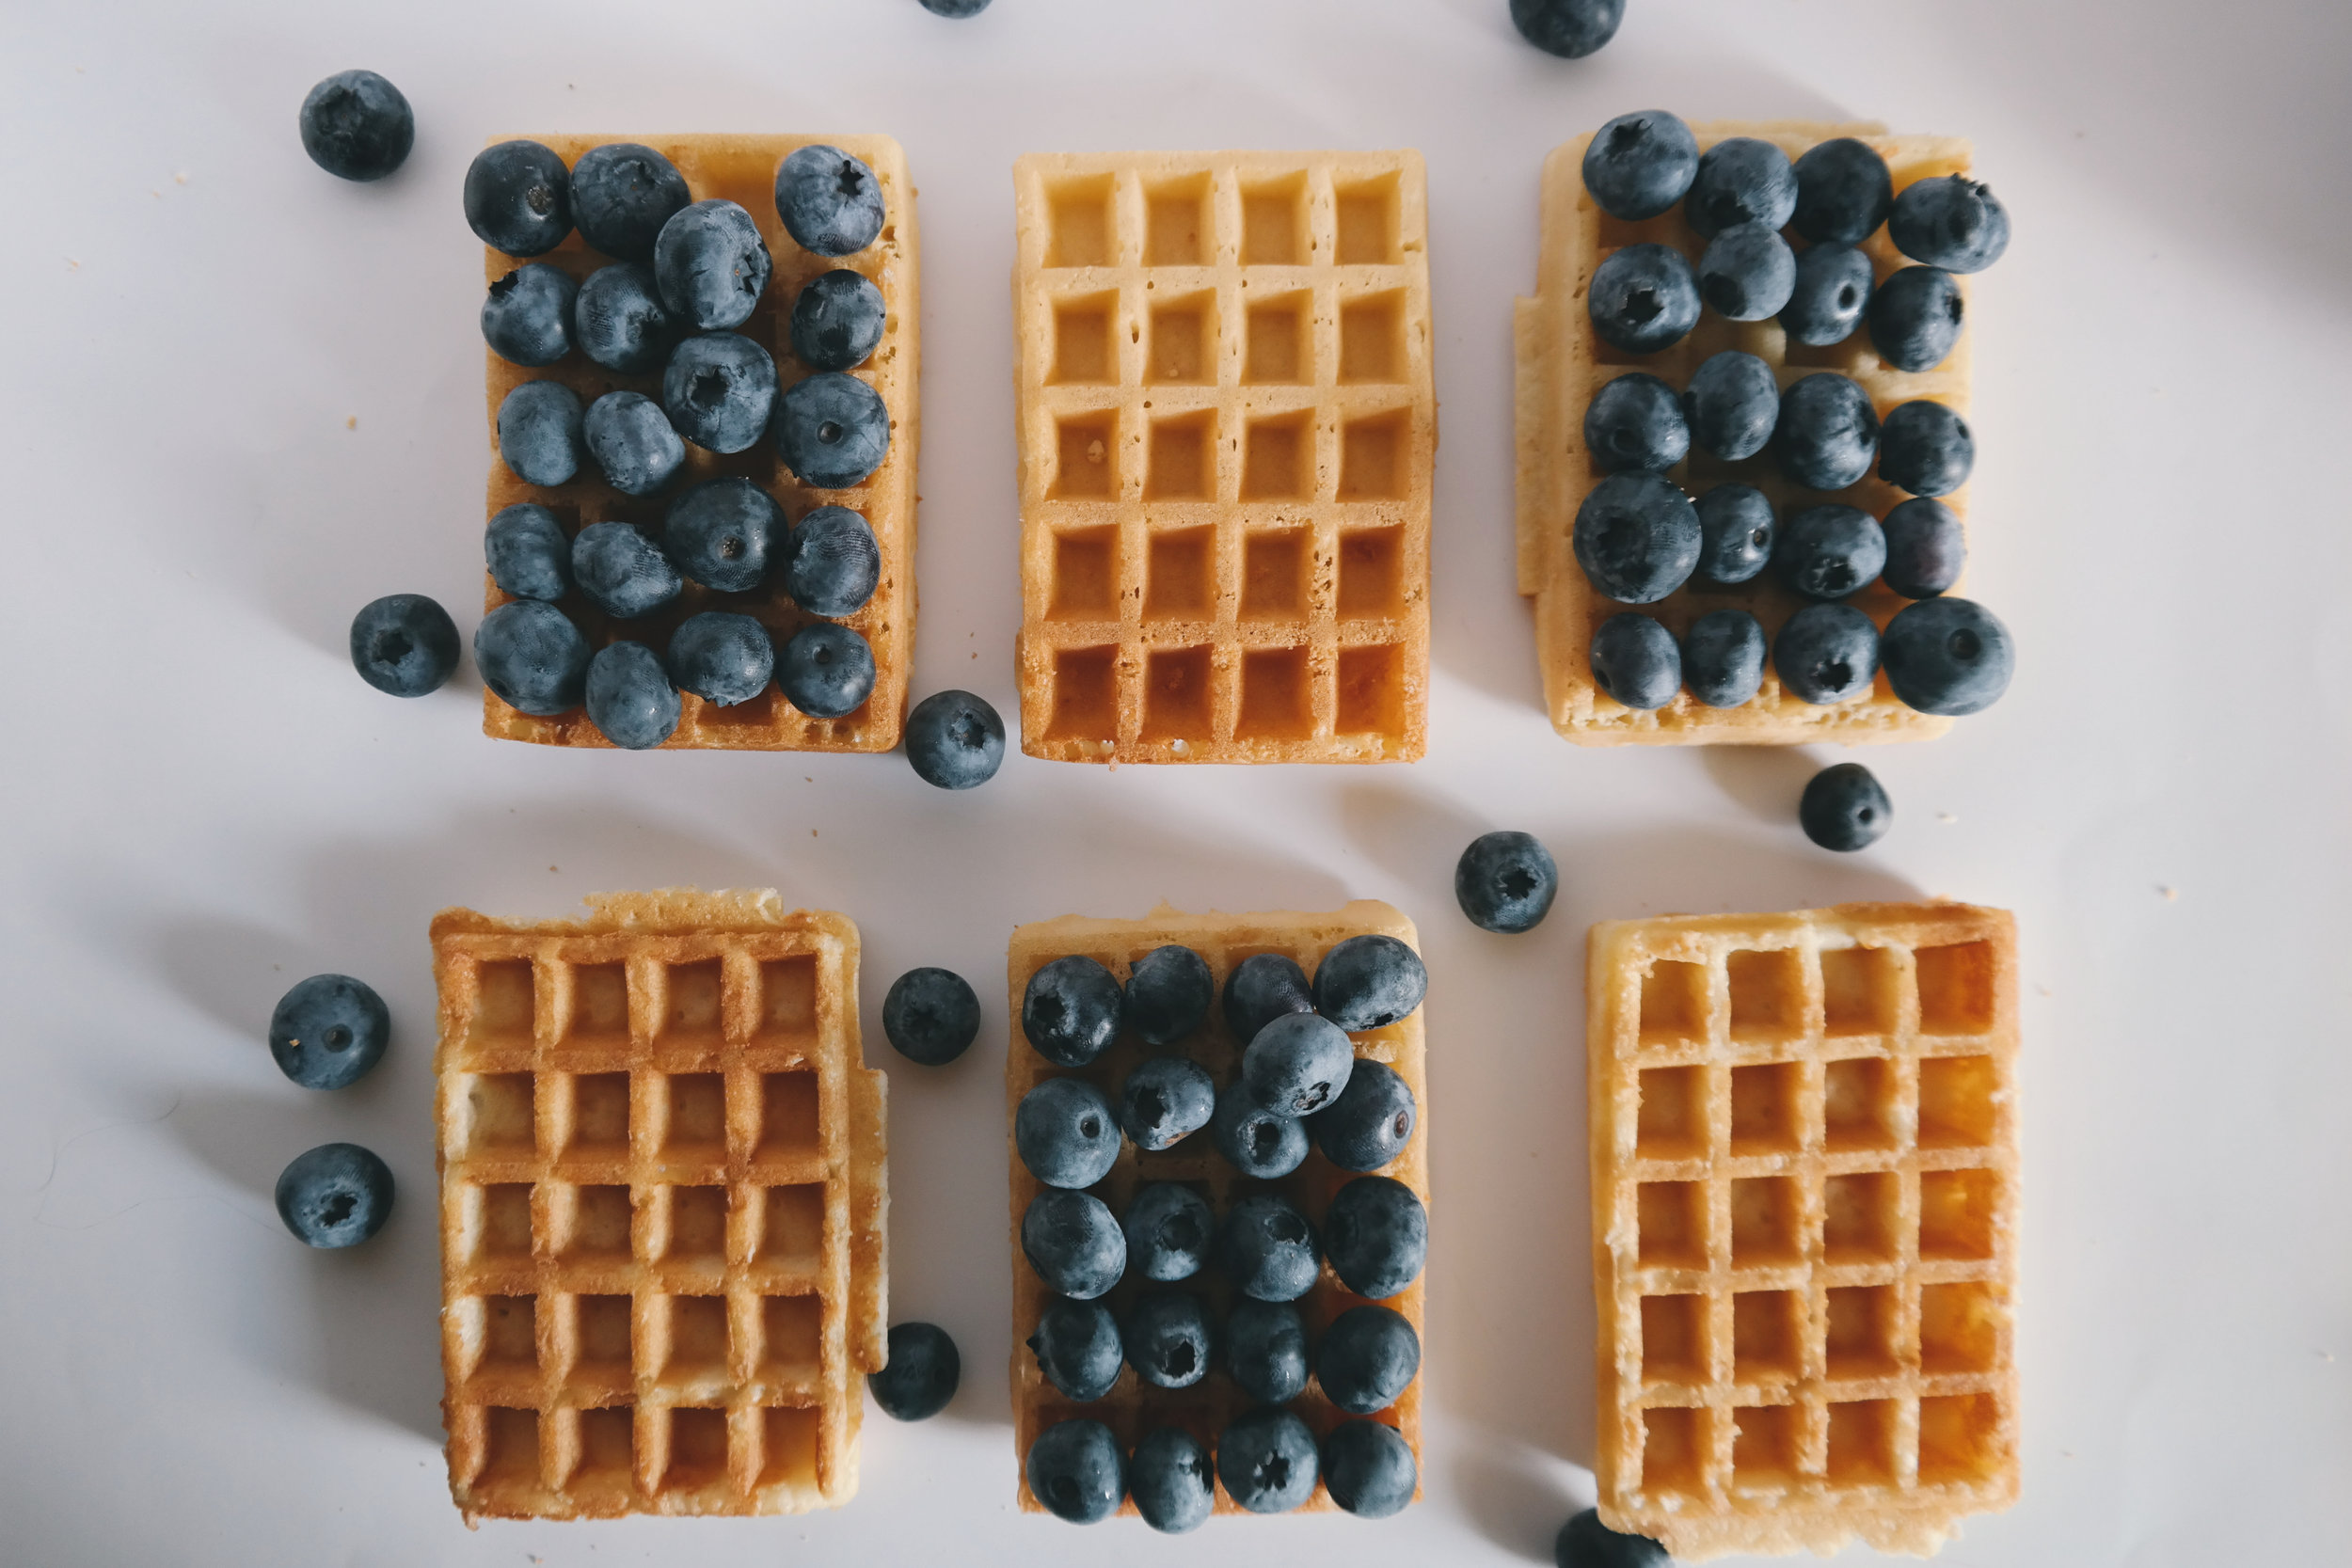 Canva - Six Baked Waffles and Blueberries.jpg